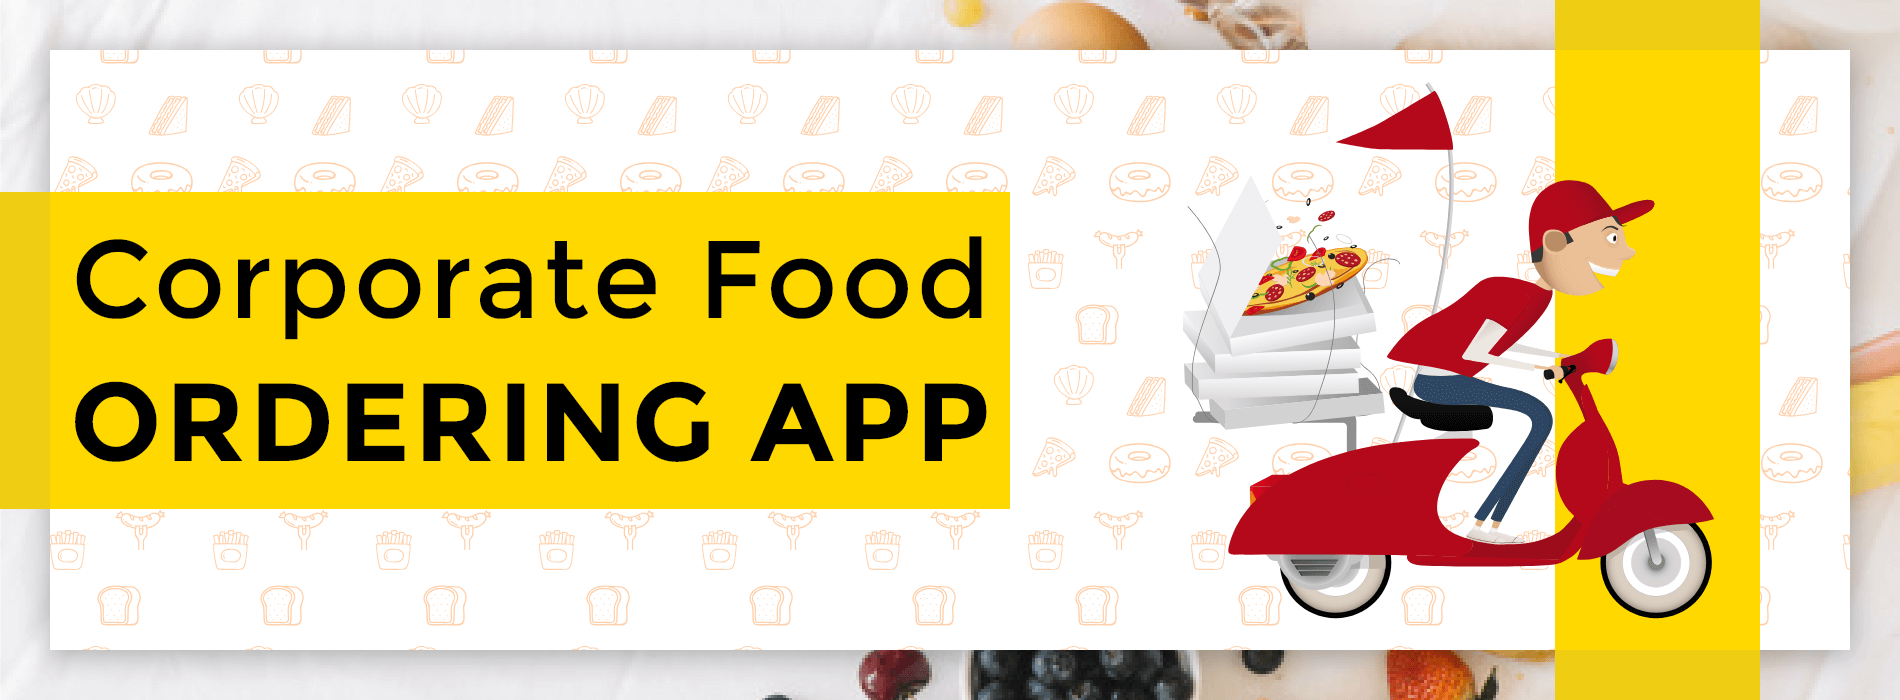 How to Make Online Corporate Food Ordering App?